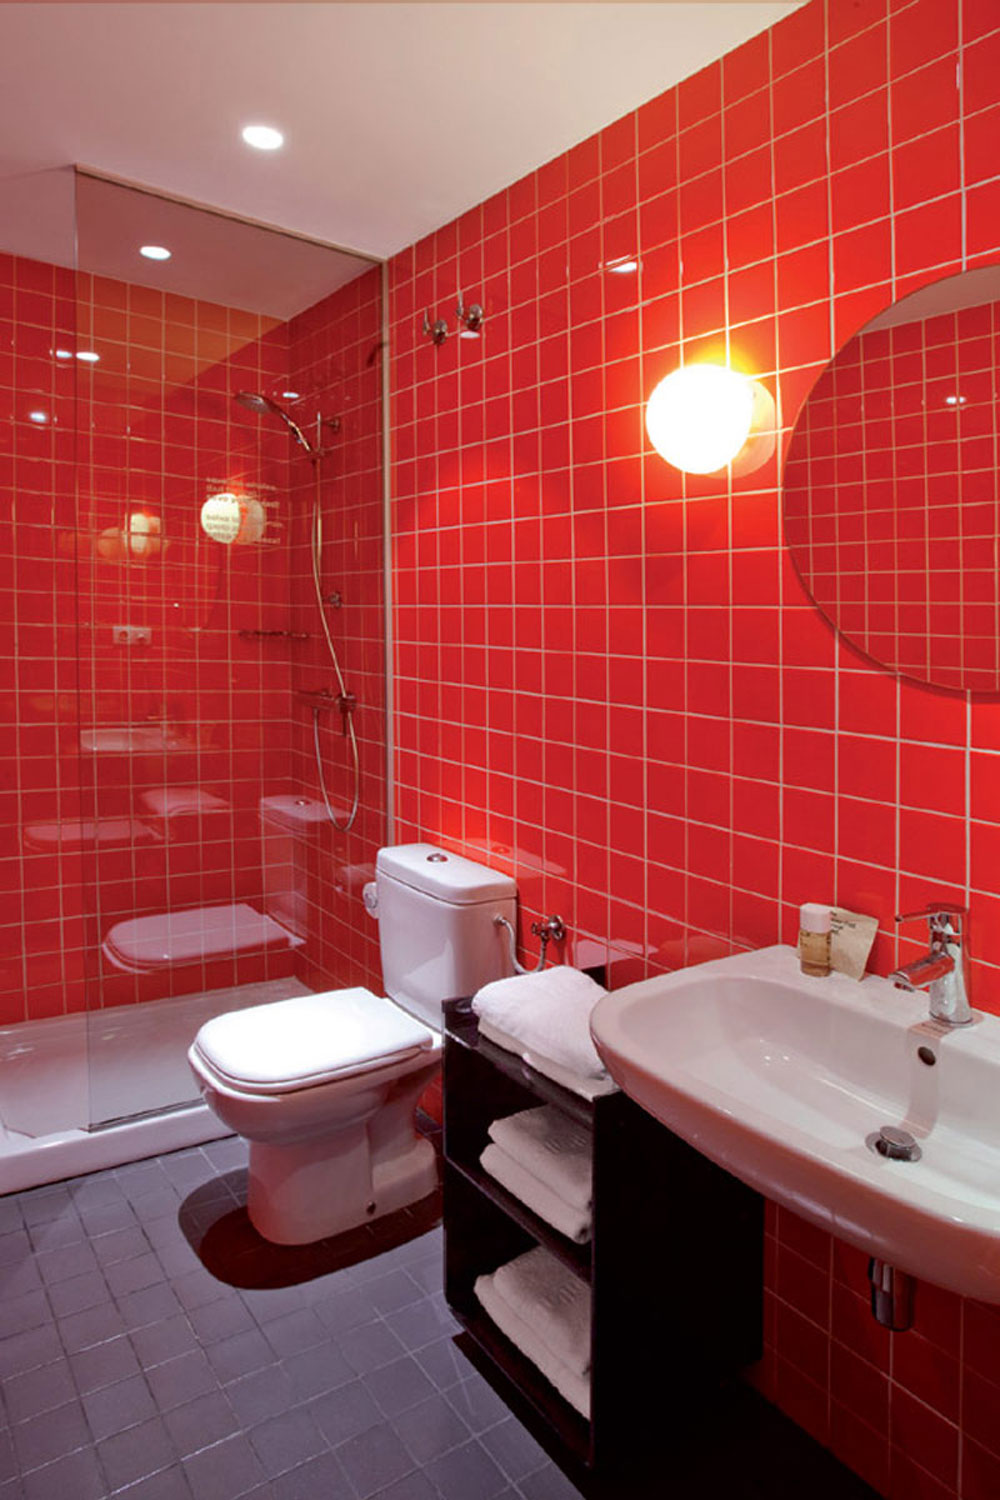 Add-warmth-to-your-house-with-ideas-of-these-red-bathroom-interiors-10, add-warmth-to-your-house-with-ideas-of-these-red-bathroom-interiors